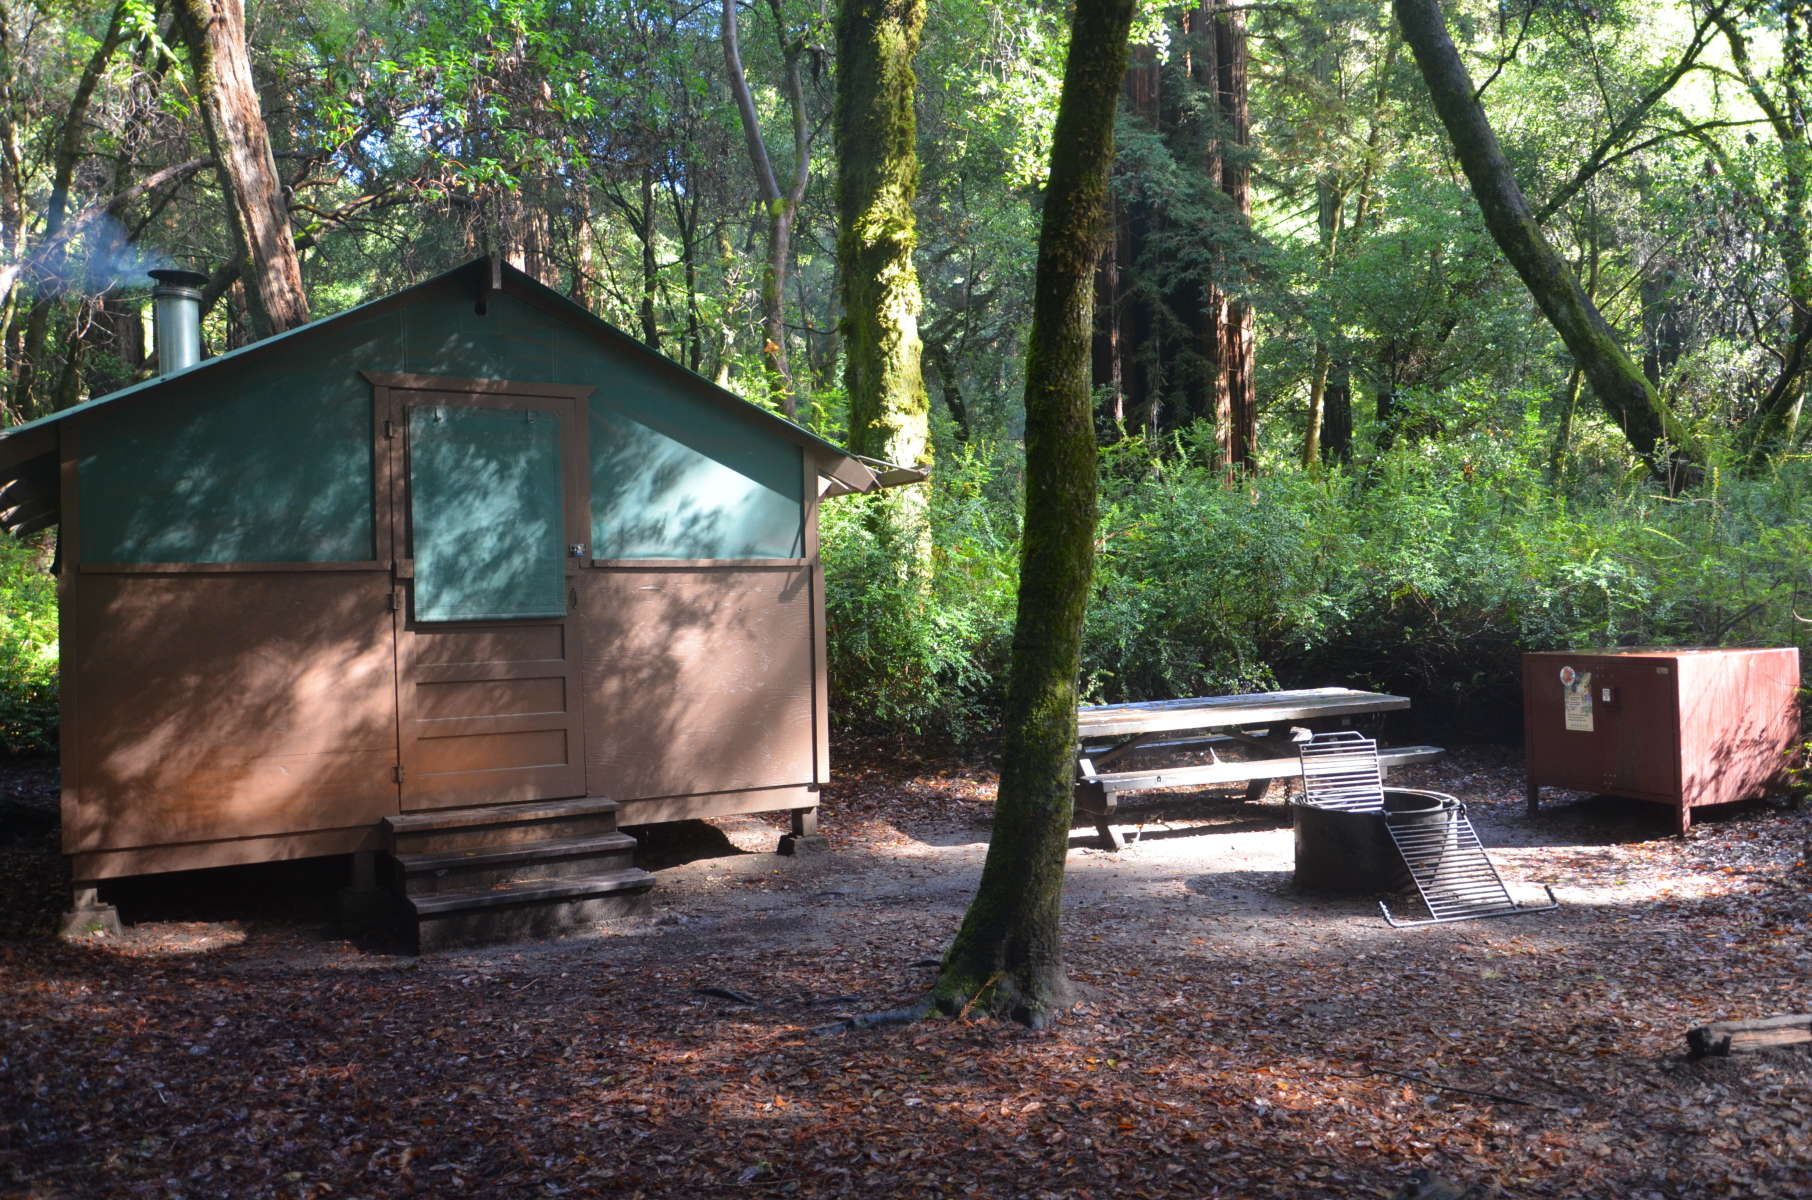 Big Basin Tent Cabins Big Basin Redwoods CA 6 Hipcamper reviews